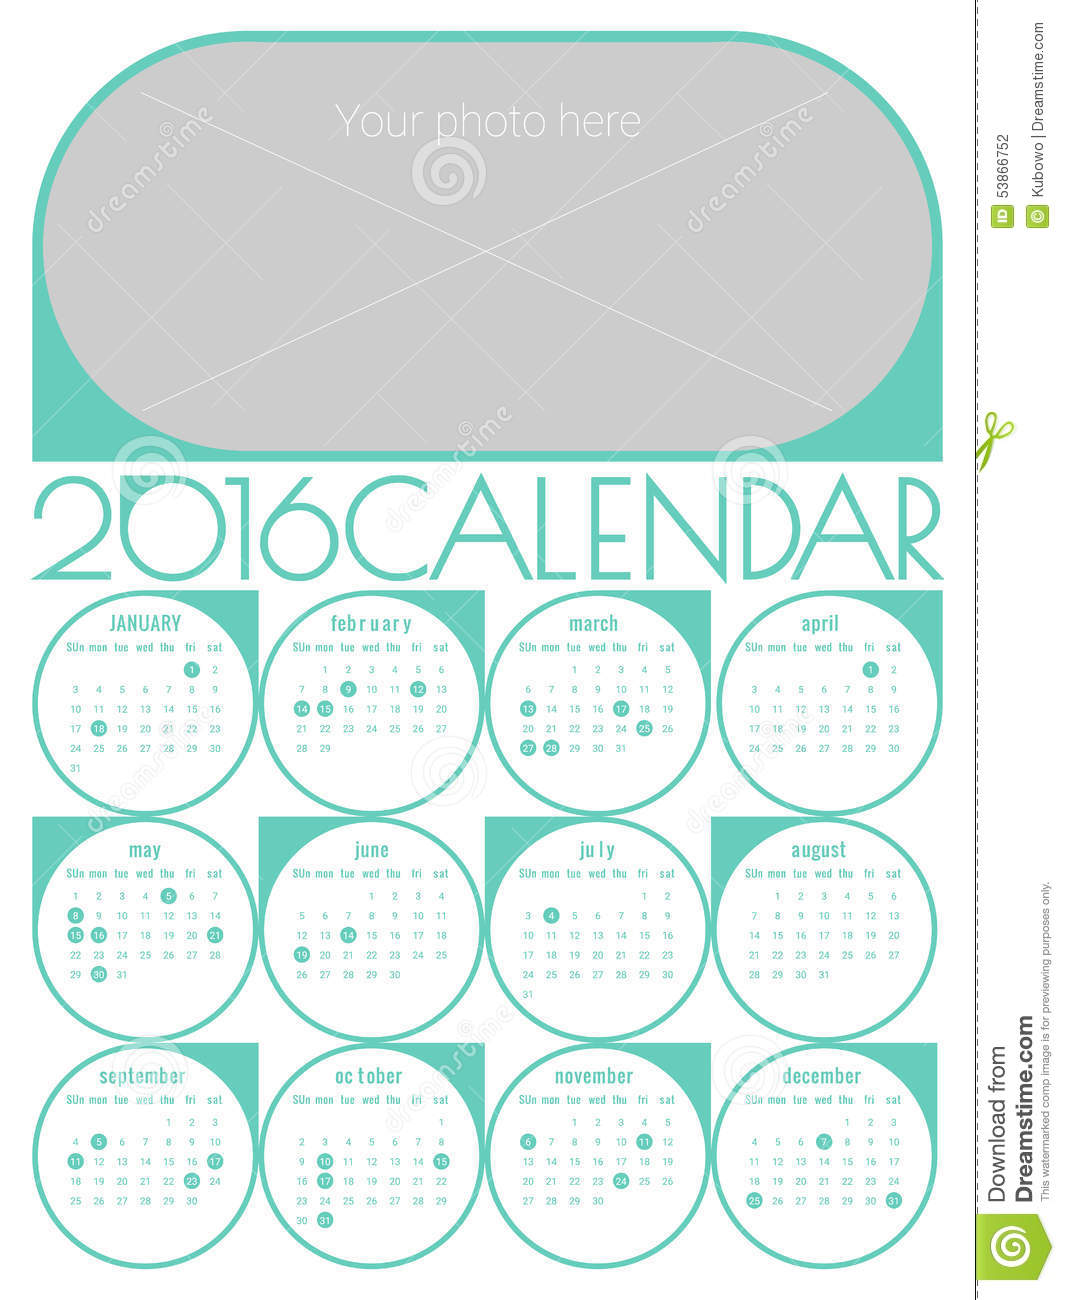 Calendar 2016 Template Stock Vector - Image: 53866752